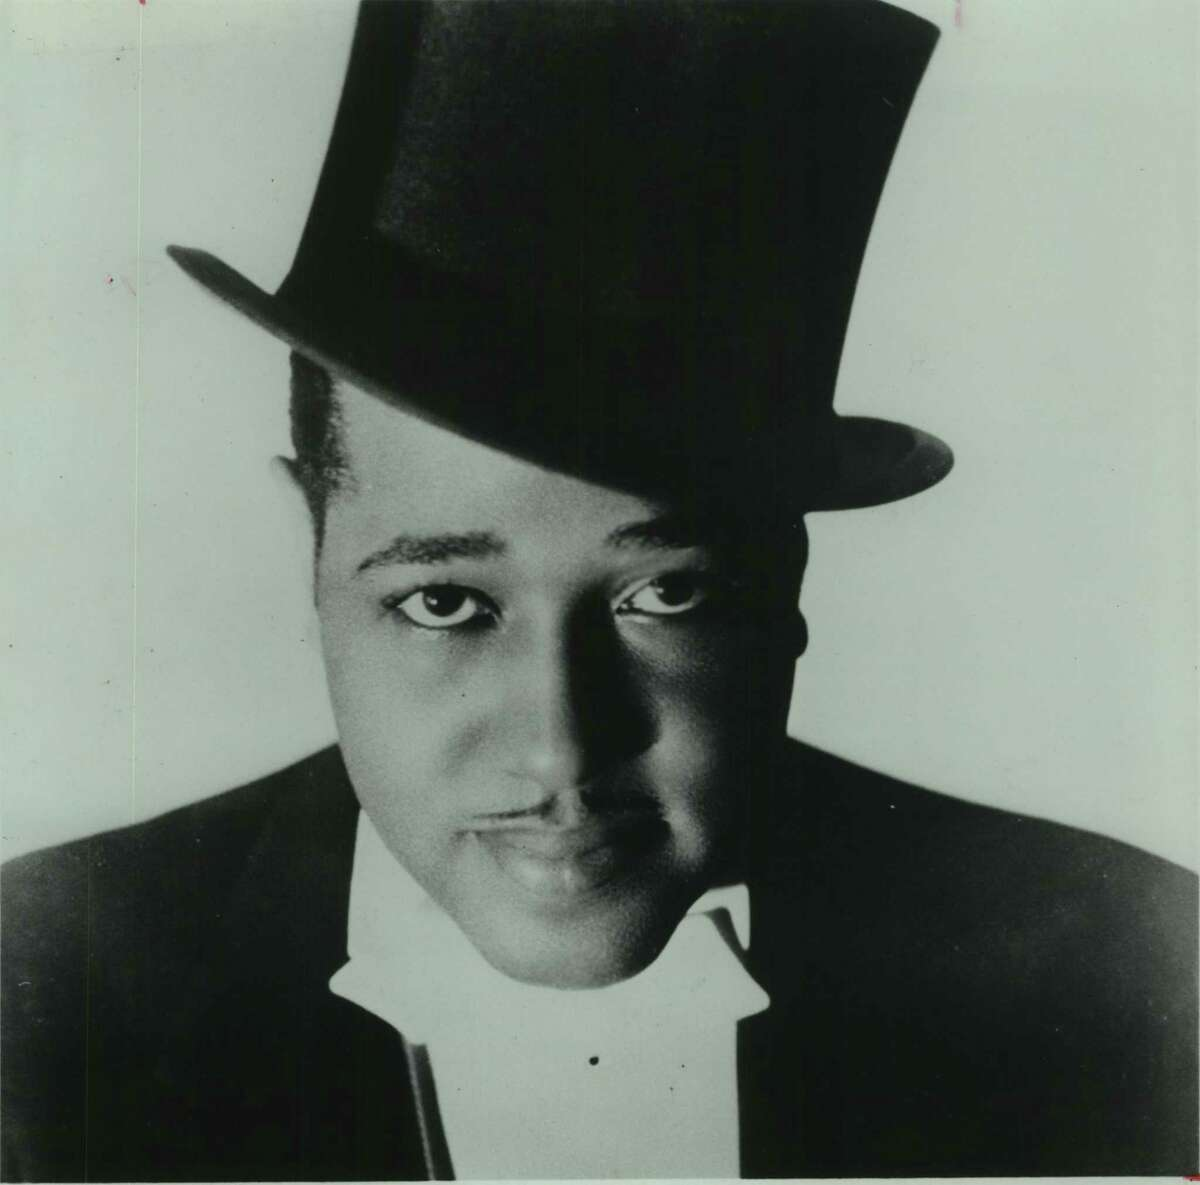 Duke Ellington is one of the musicians from the Harlem Renaissance that Reggie Quinerly will discuss in his seminar for the Scholarly Series.